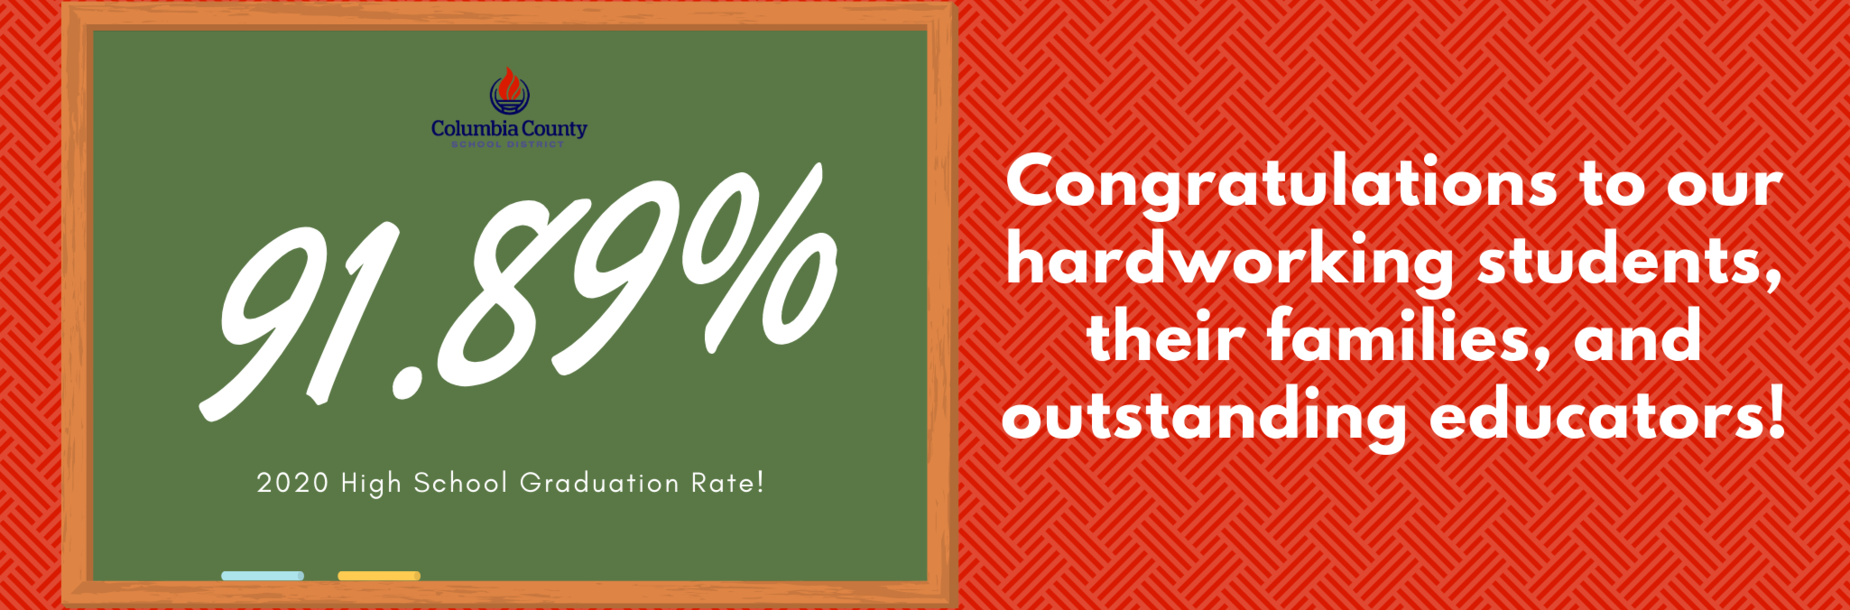 graduation rate infographic